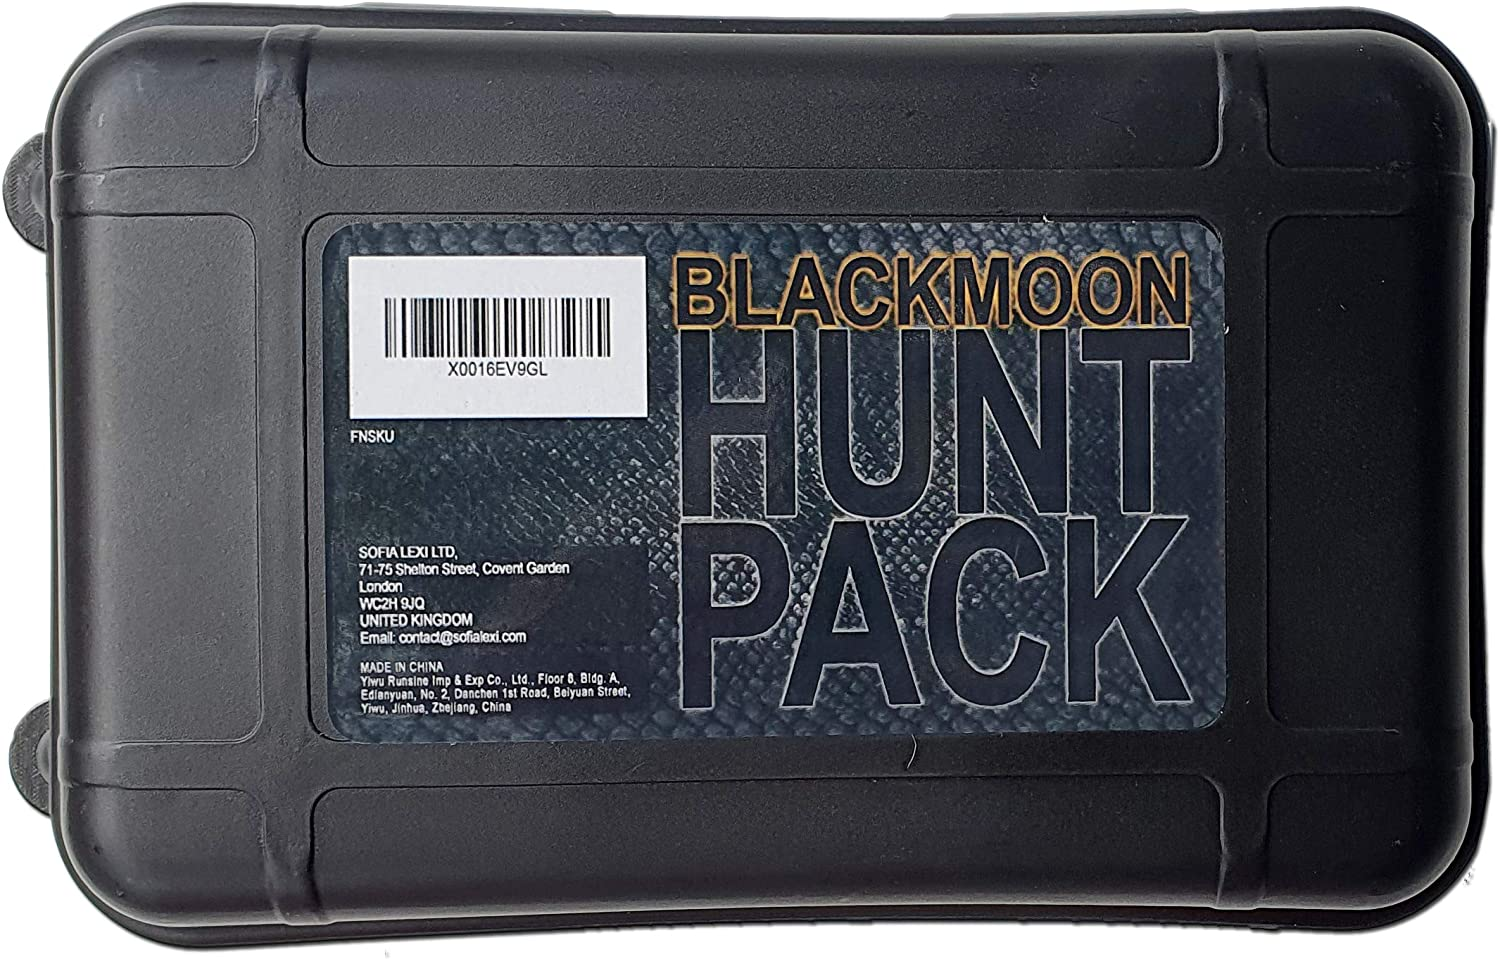 Blackmoon Emergency Survival Kit Quality Compact Easy to Carry Hunting Light